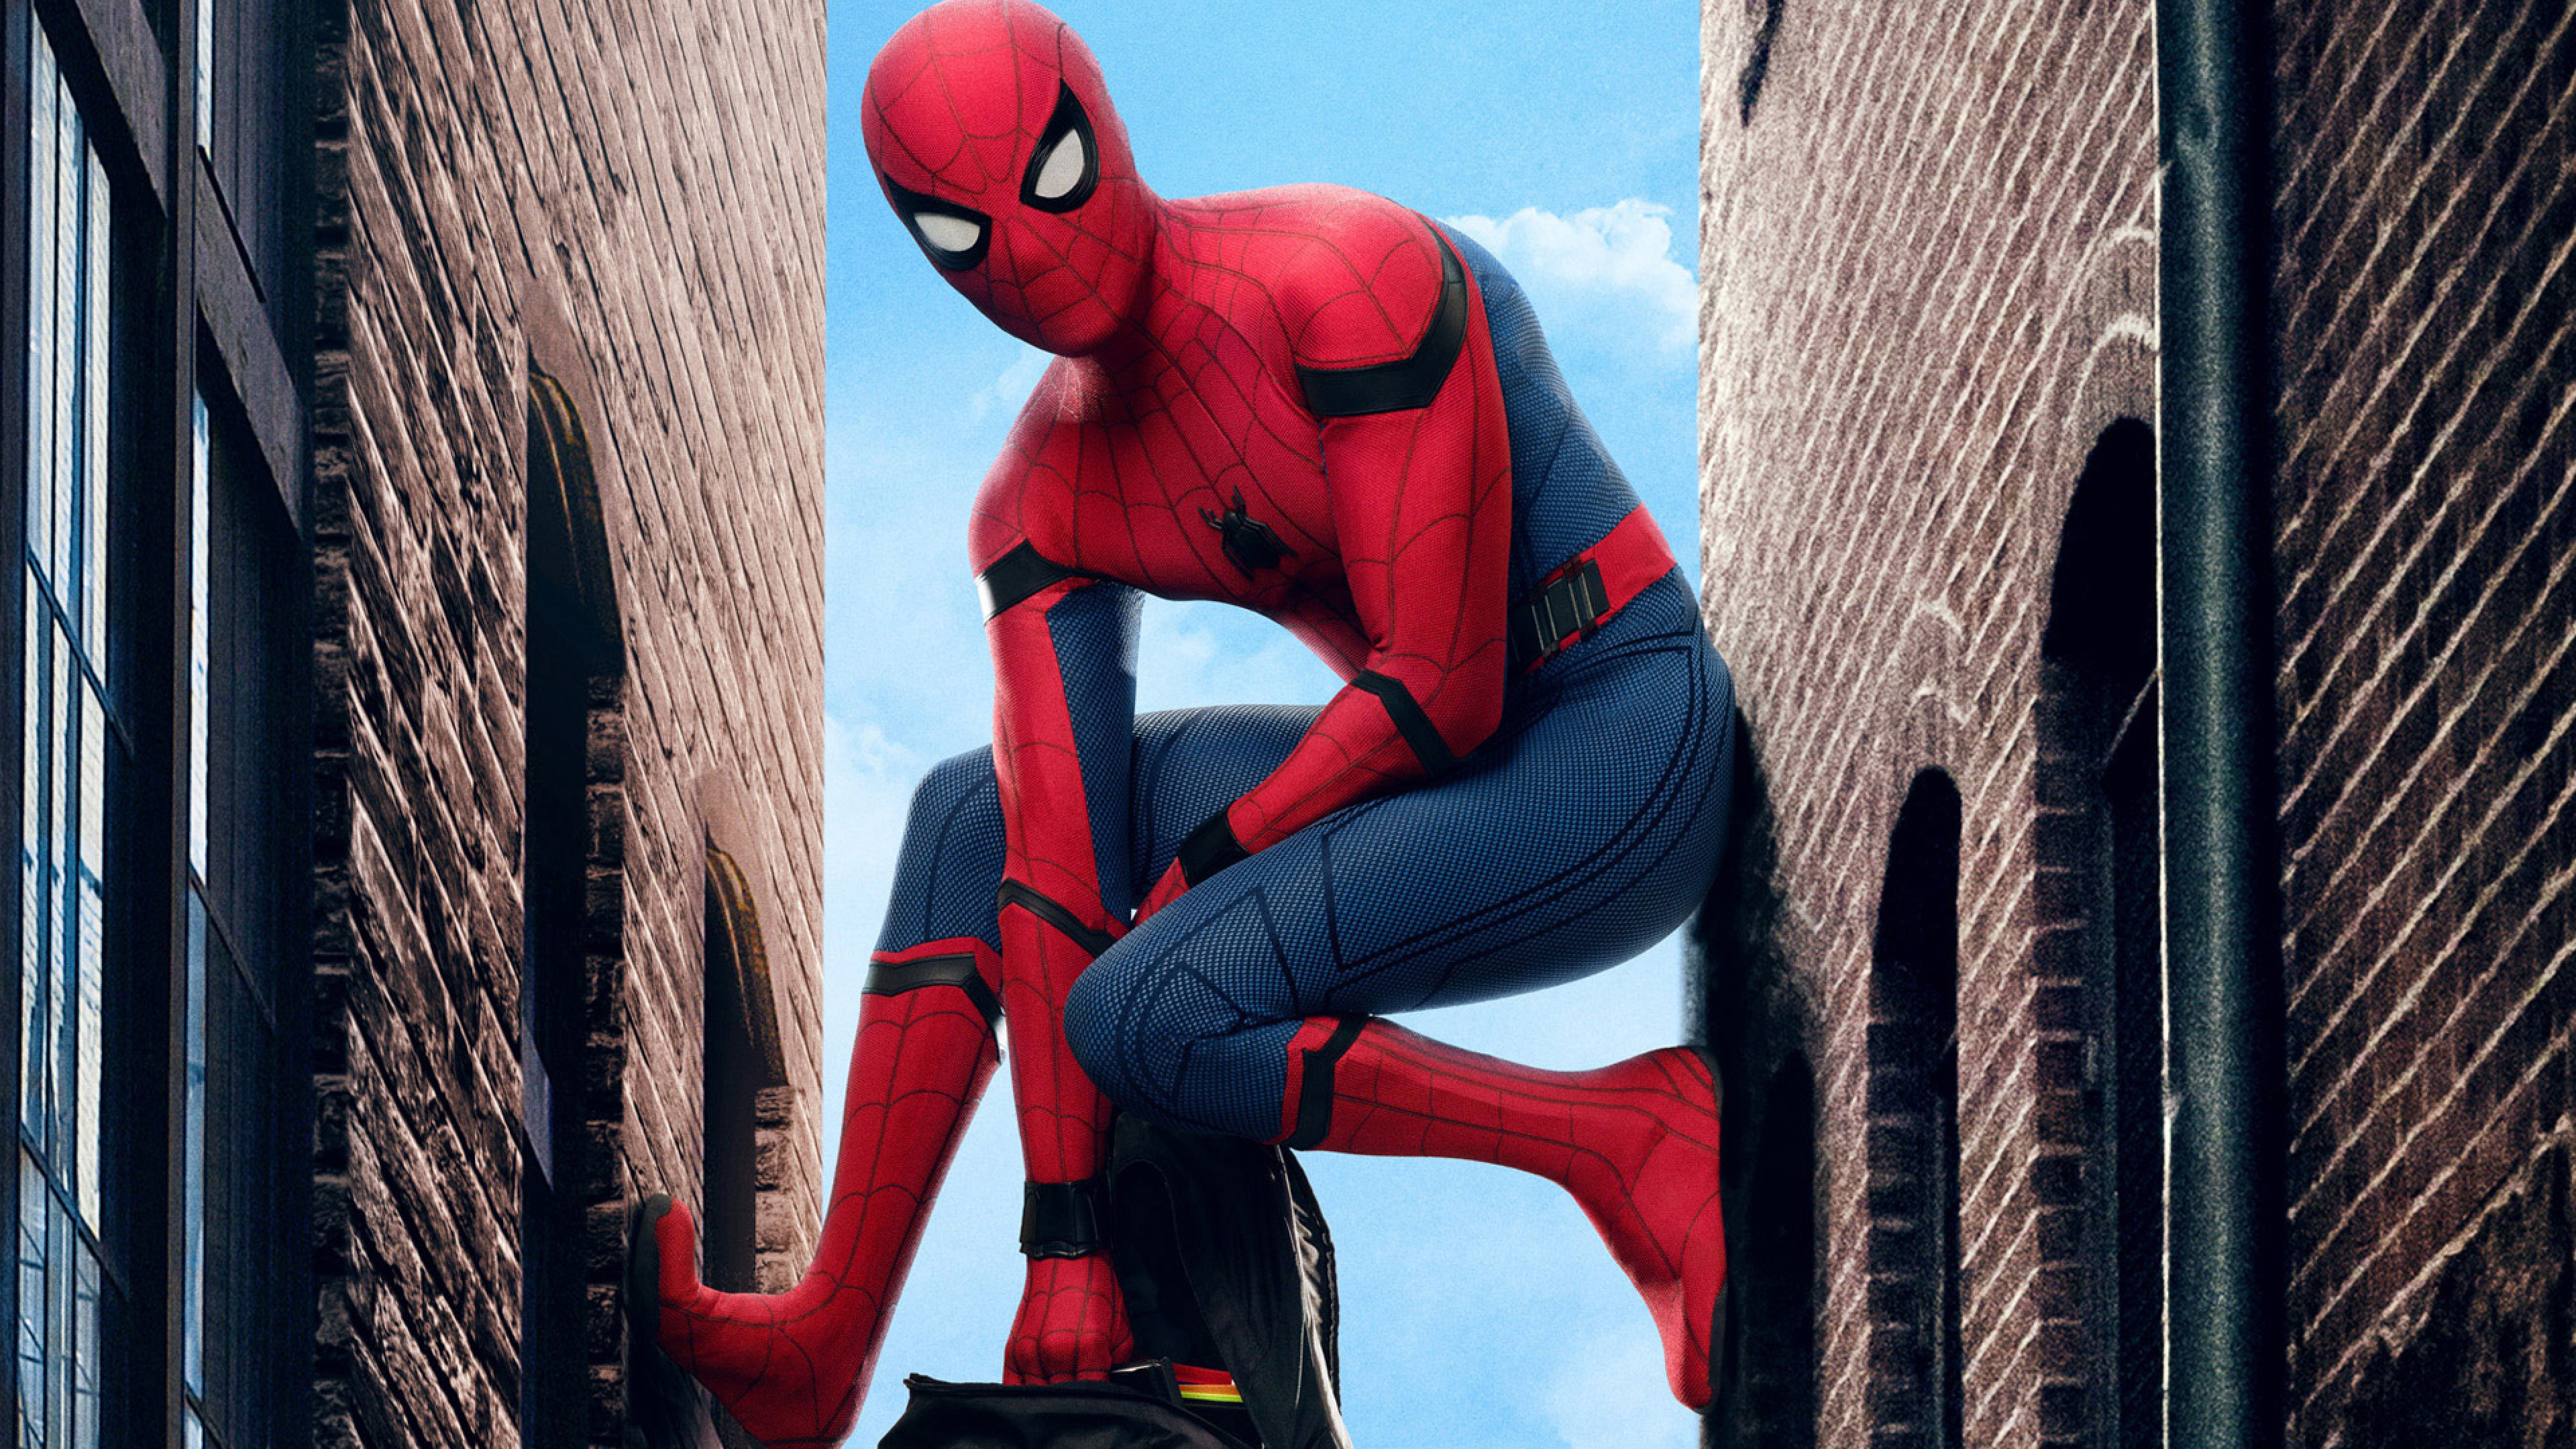 Spiderman Homecoming Movie Hd Wallpaper For Desktop And